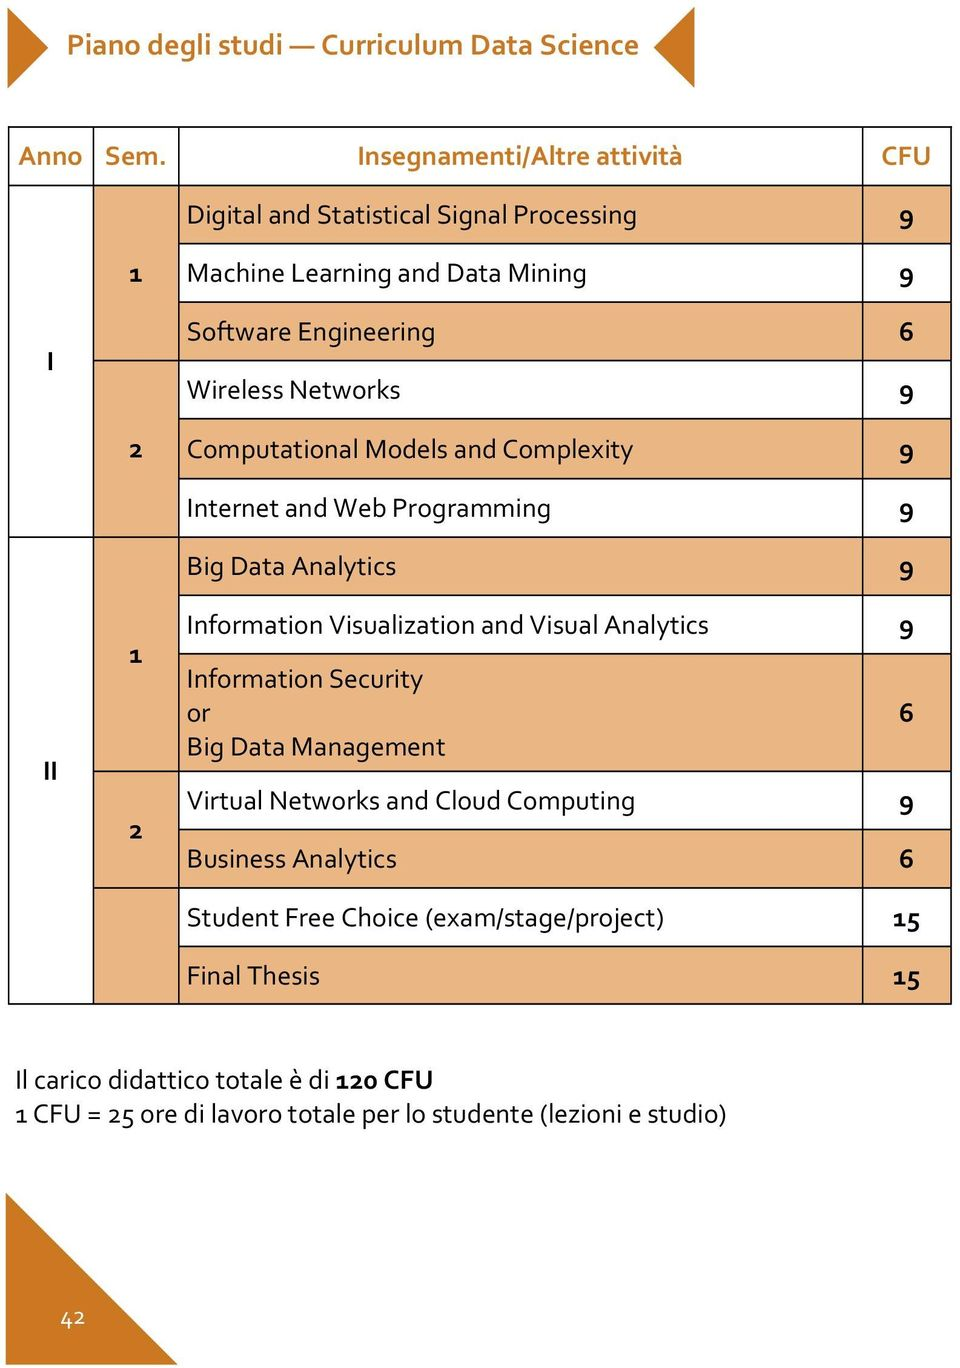 2 Computational Models and Complexity 9 II 1 2 Internet and Web Programming 9 Big Data Analytics 9 Information Visualization and Visual Analytics 9